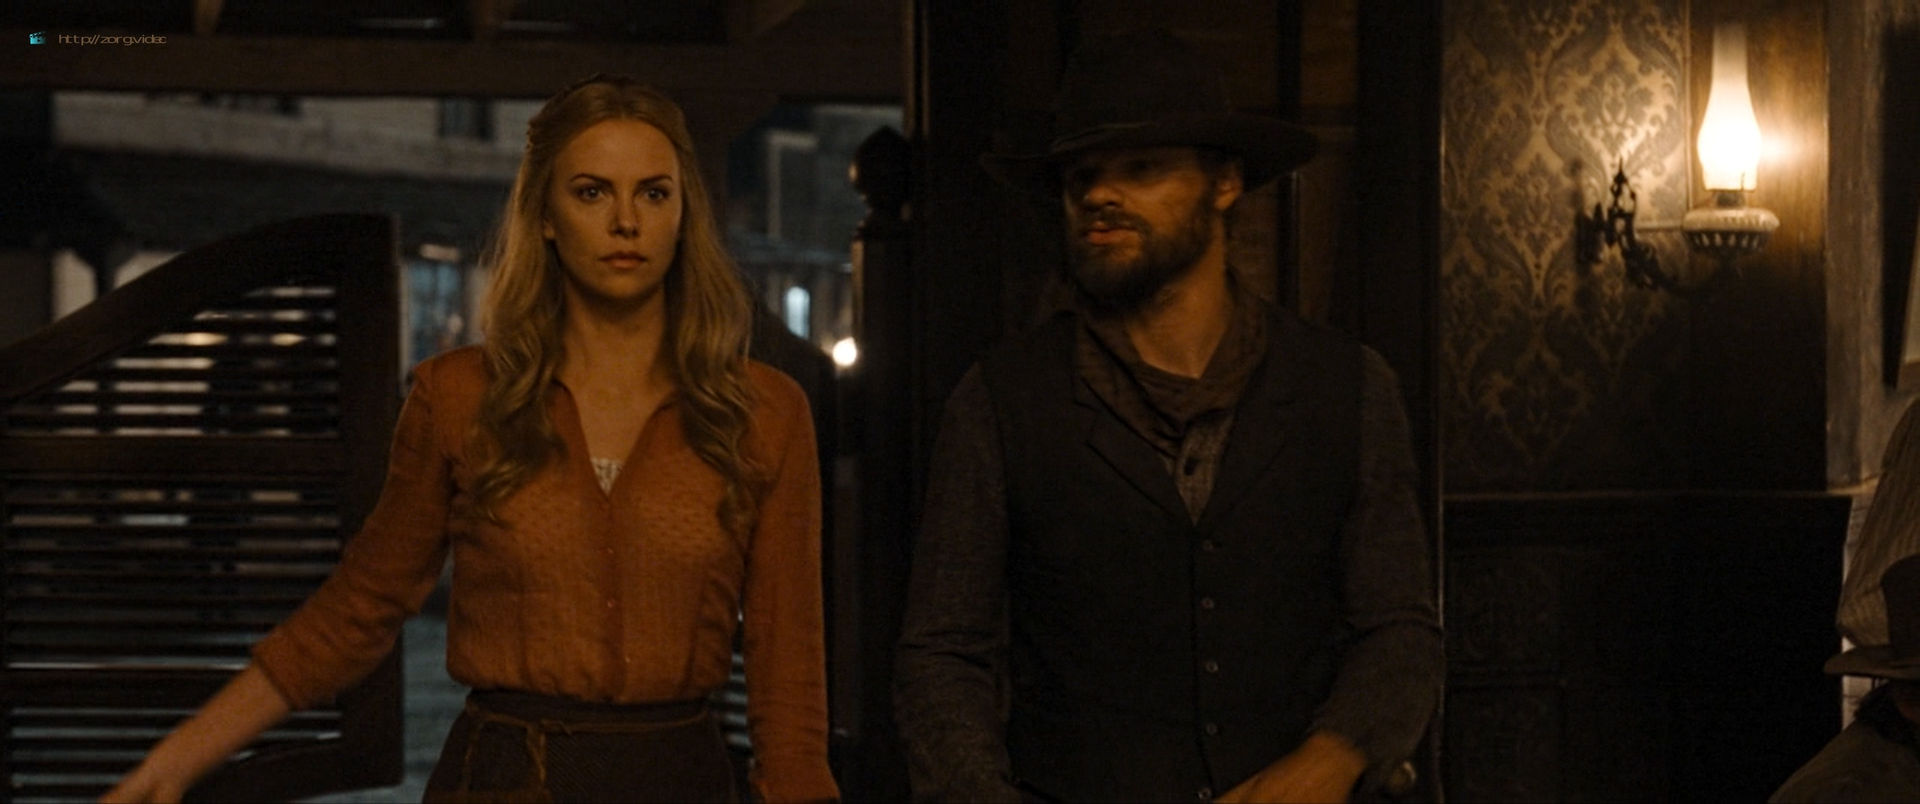 Charlize Theron sexy Amanda Seyfried and Sarah Silverman hot - A Million Ways to Die in the West (2014) HD 1080p BluRay (15)